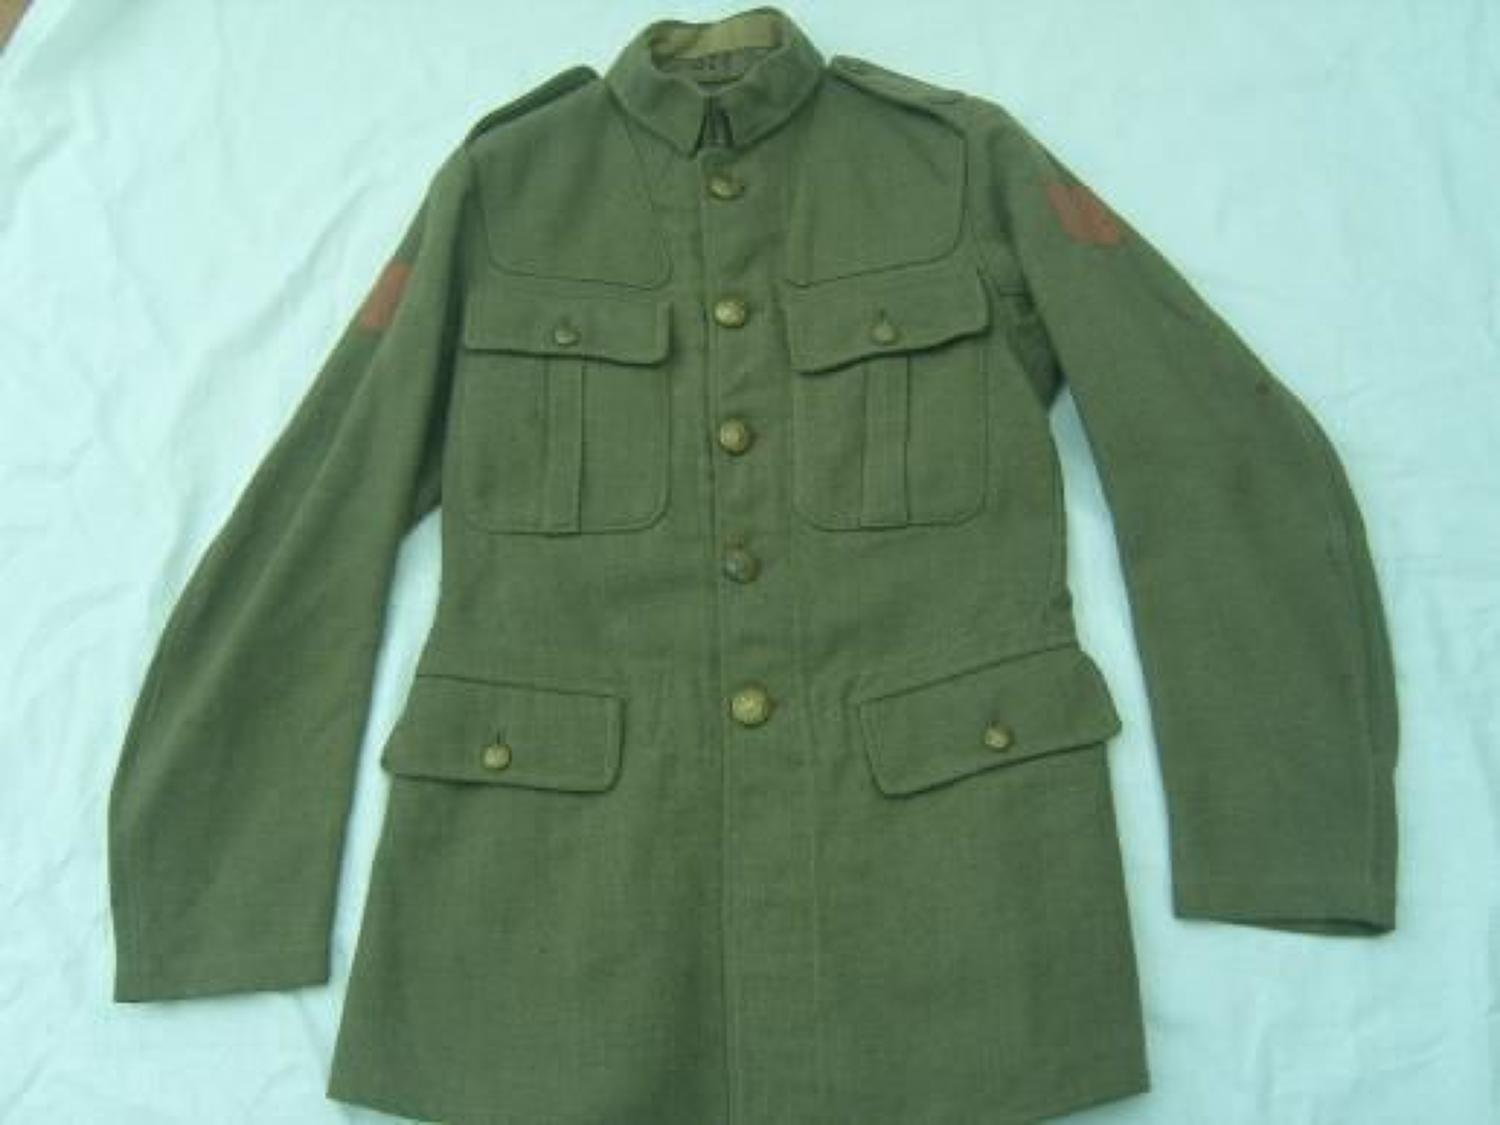 1918 PATTERN OTHER RANKS BRITISH SERVICE DRESS TUNIC: